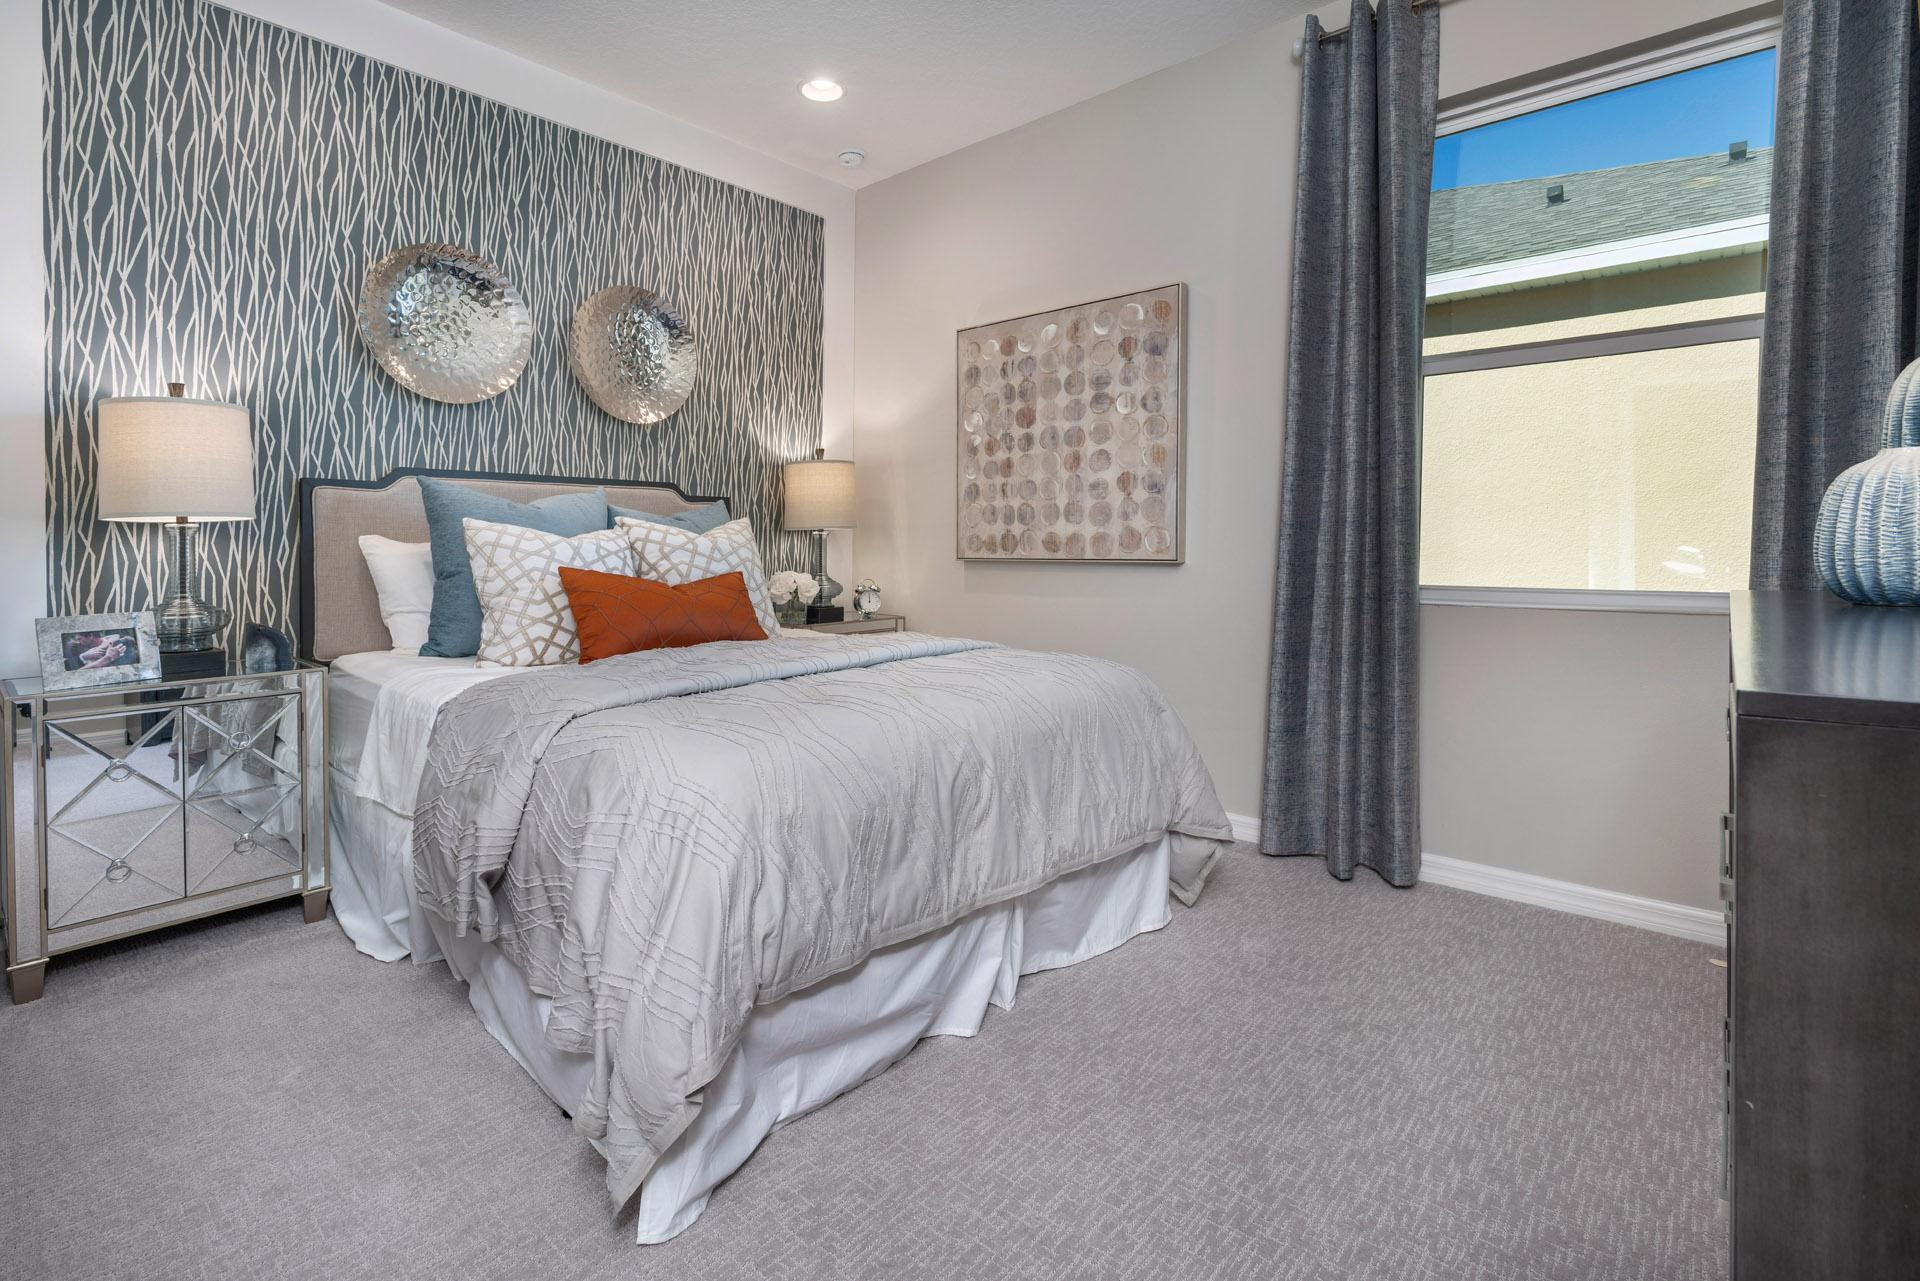 Bedroom featured in the Kensington Flex By Hanover Family Builders in Lakeland-Winter Haven, FL